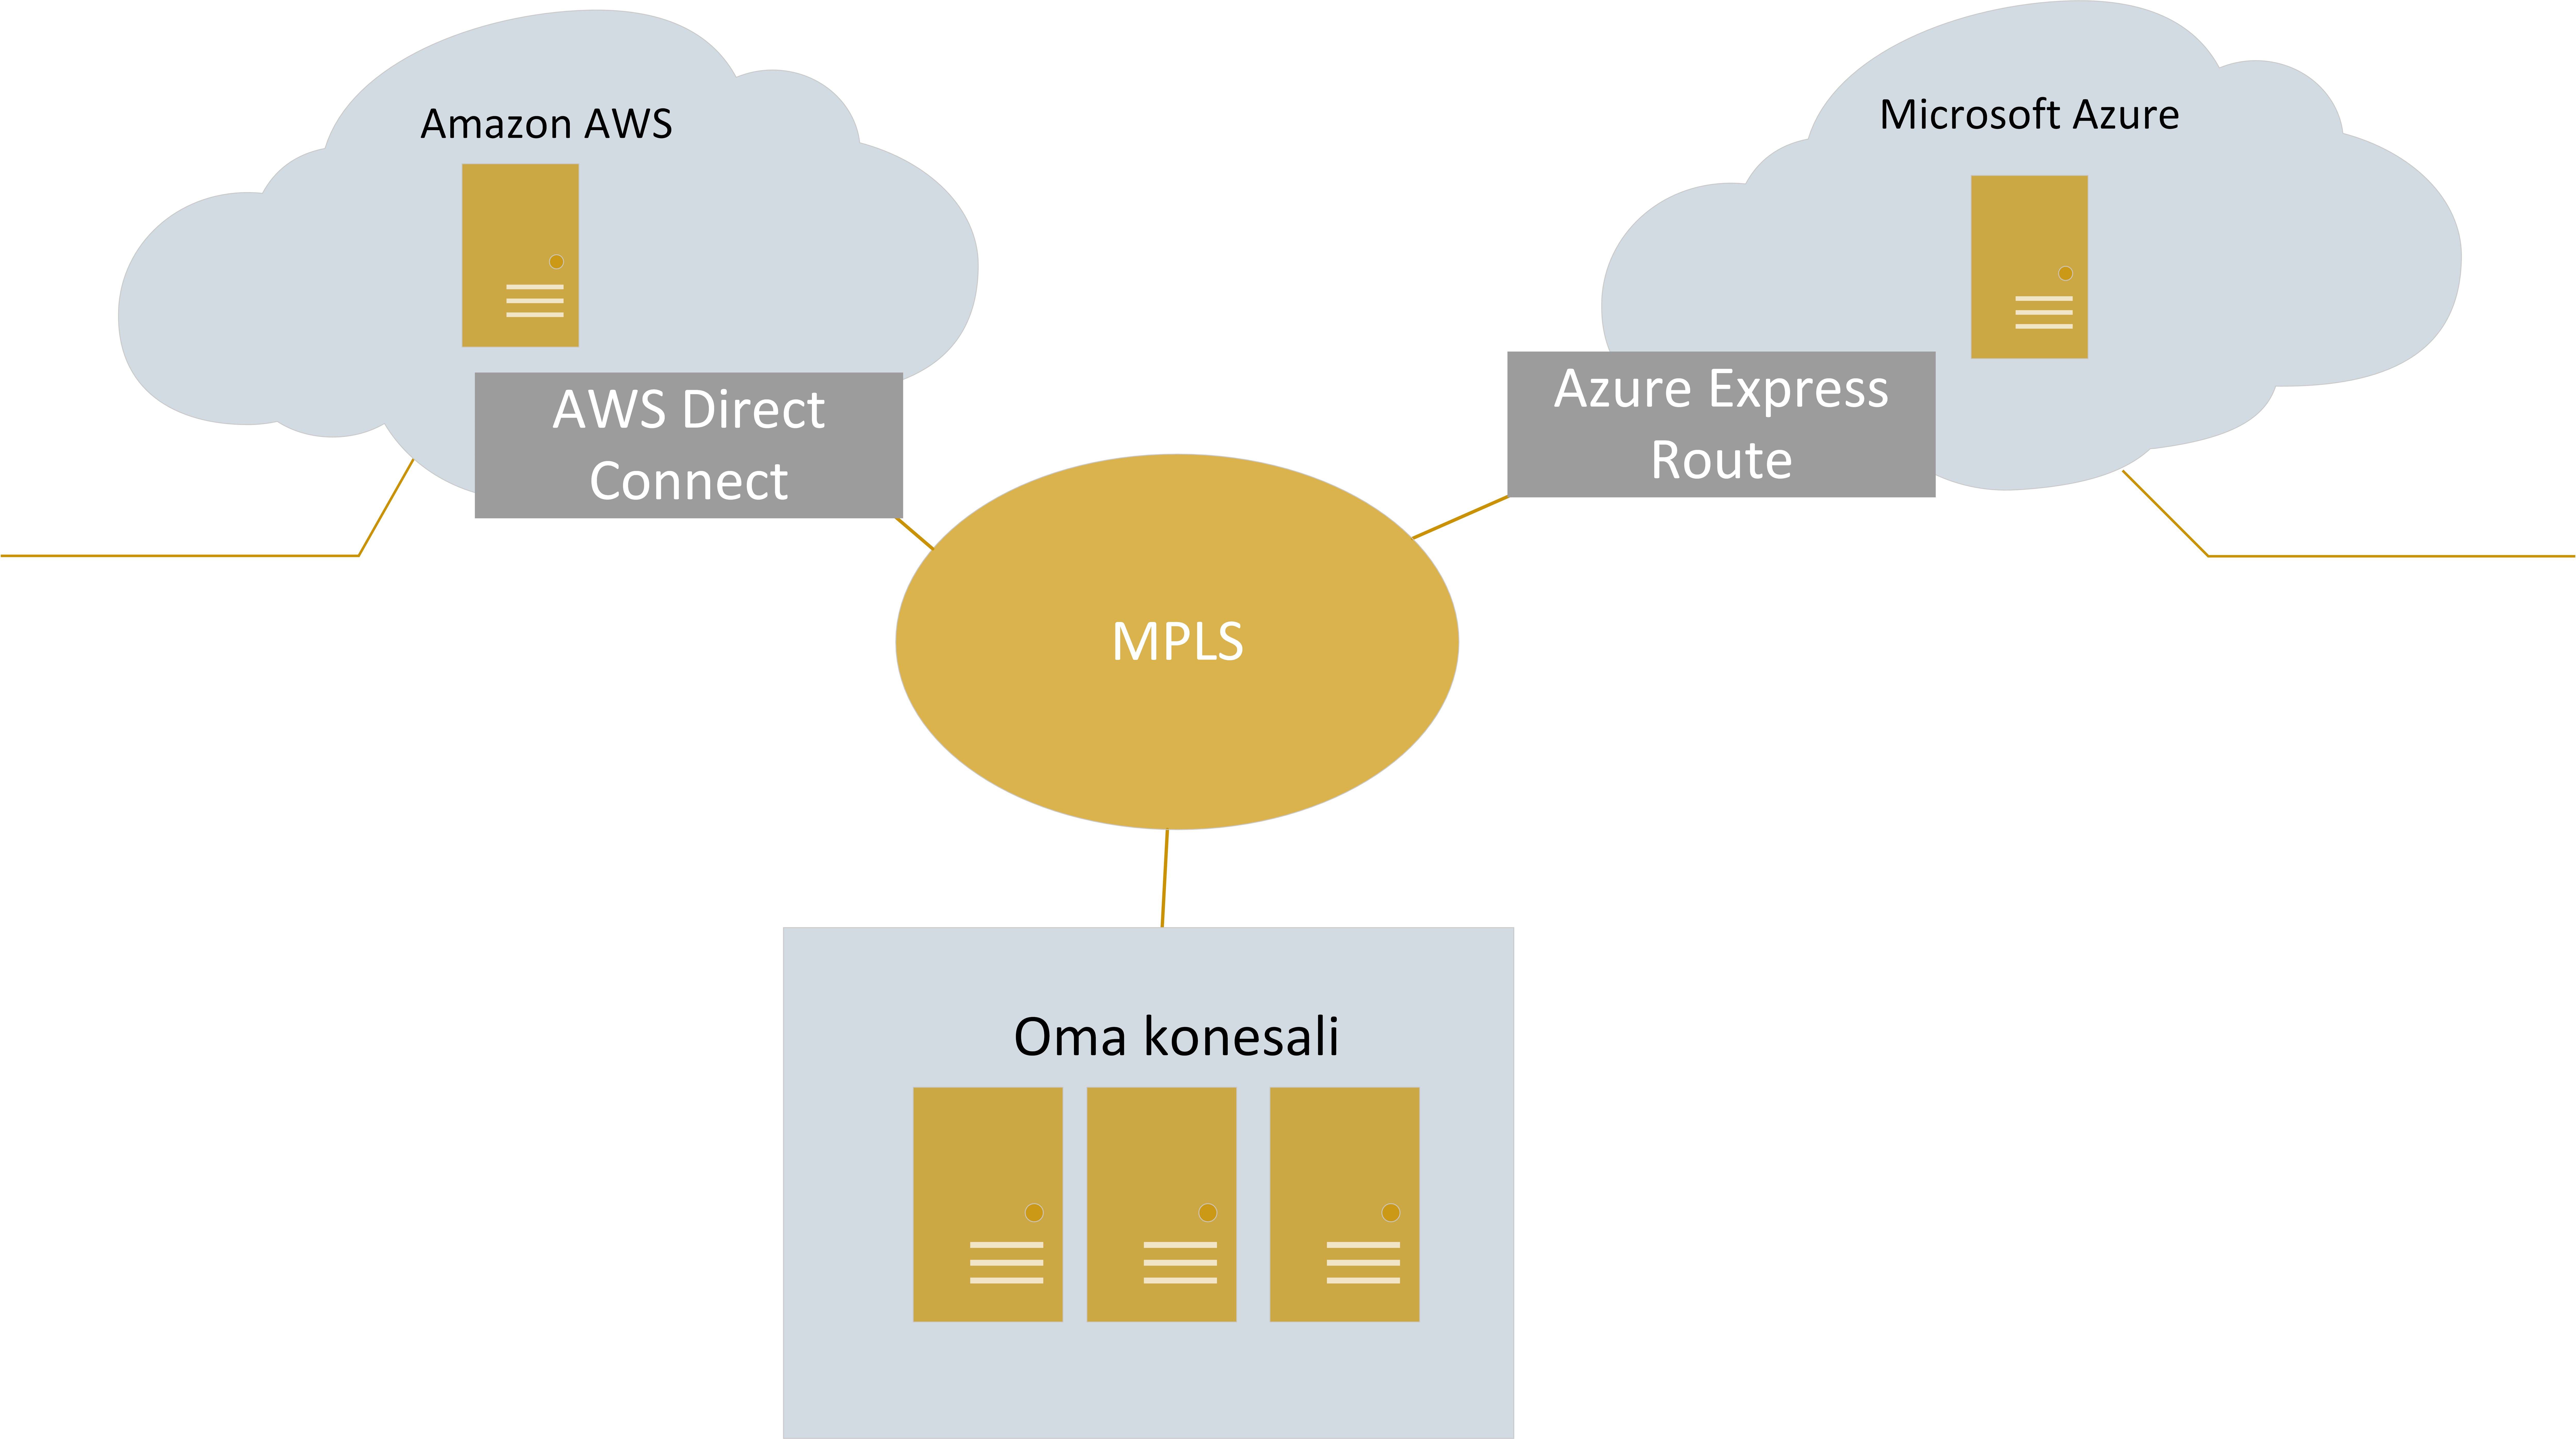 Hybrid cloud Azure Express route